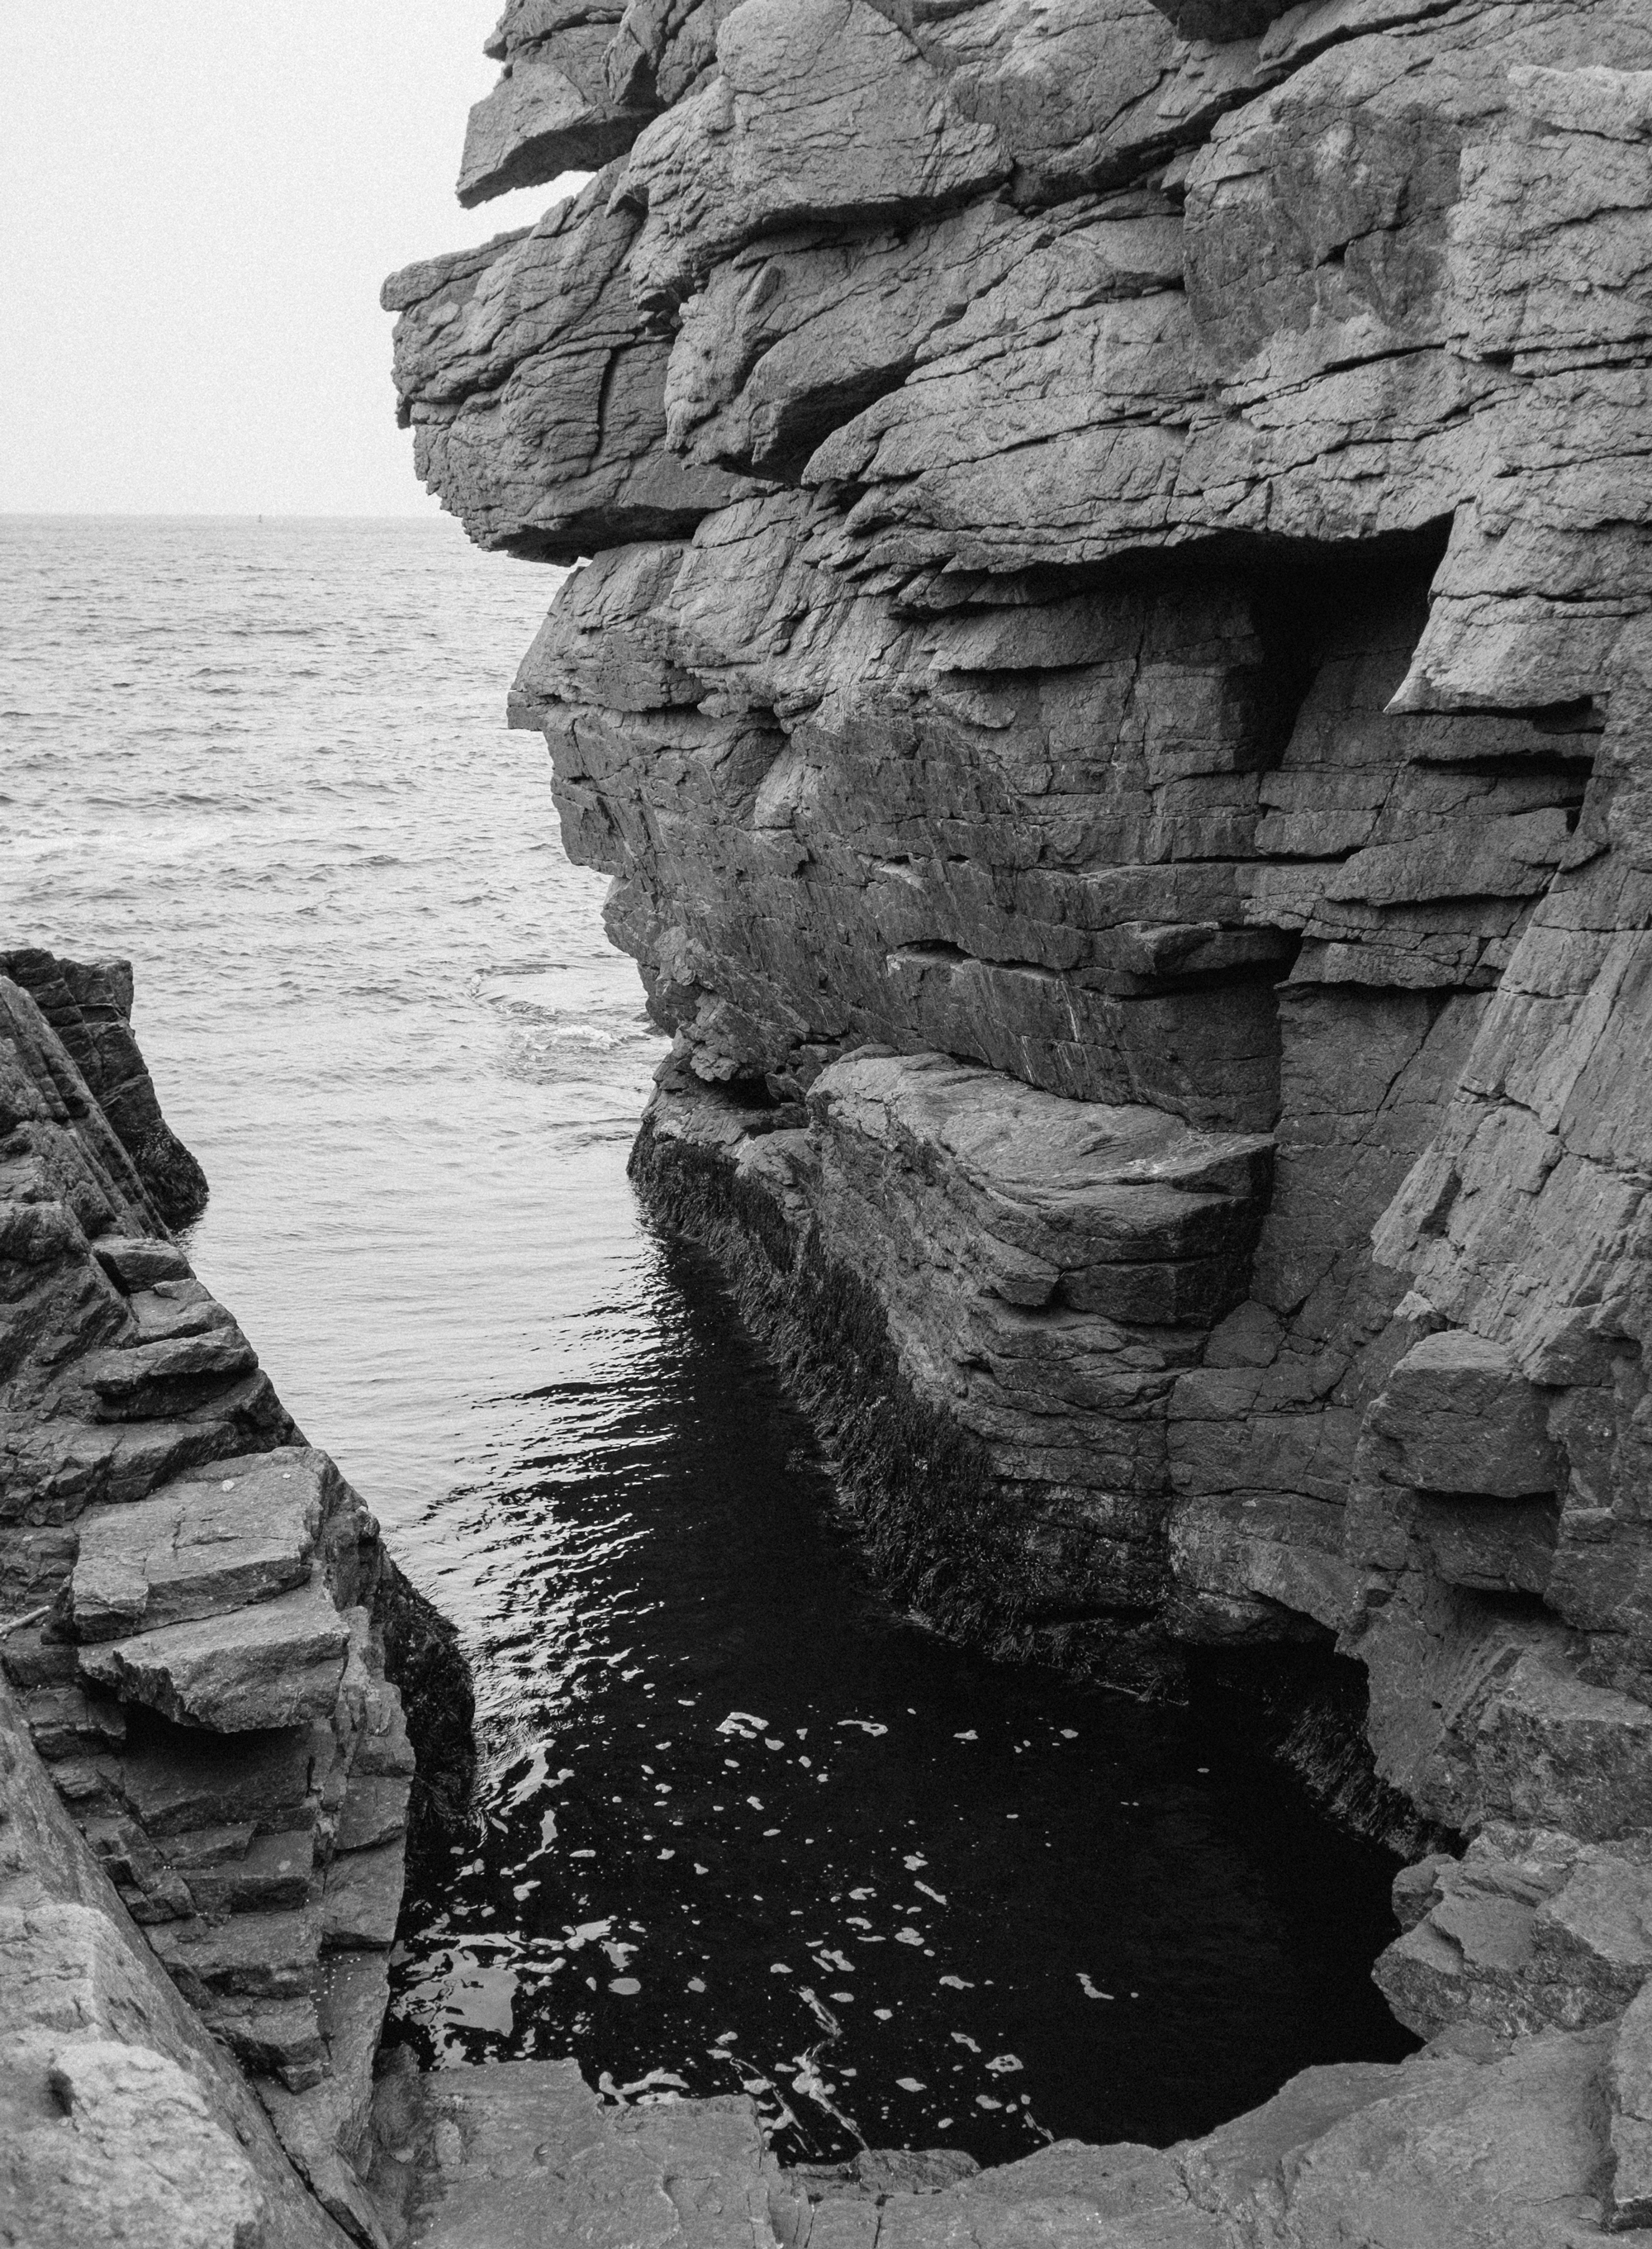 Thunder Hole at Acadia. Unfortunately, this tourist spot hasn't impressed us much so far.